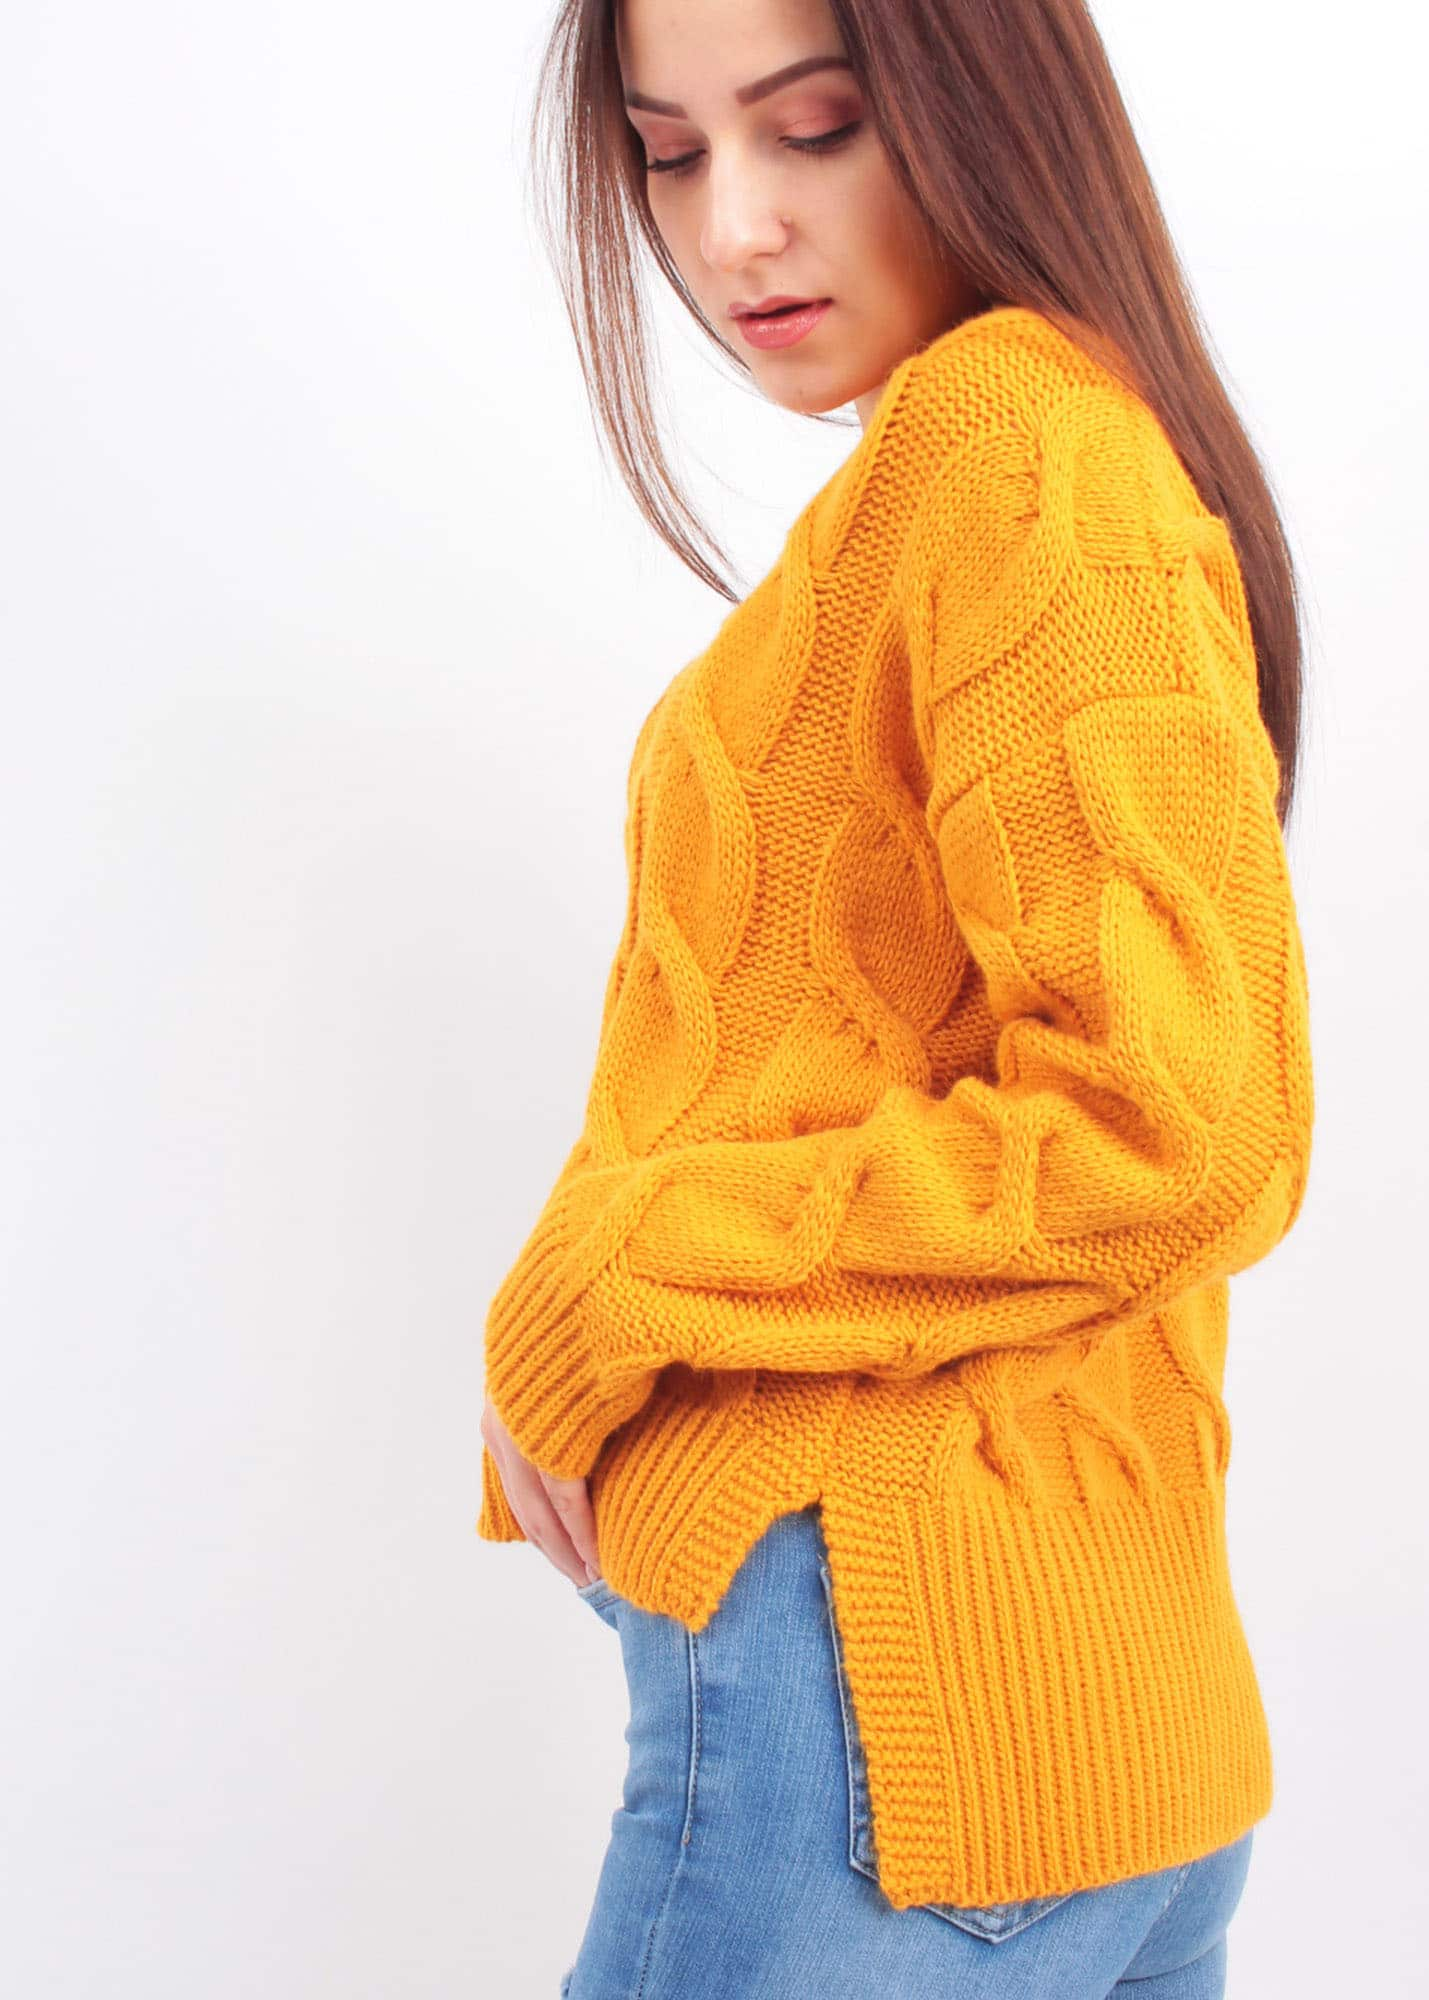 Photo №2 Apollonia Giallo sweater